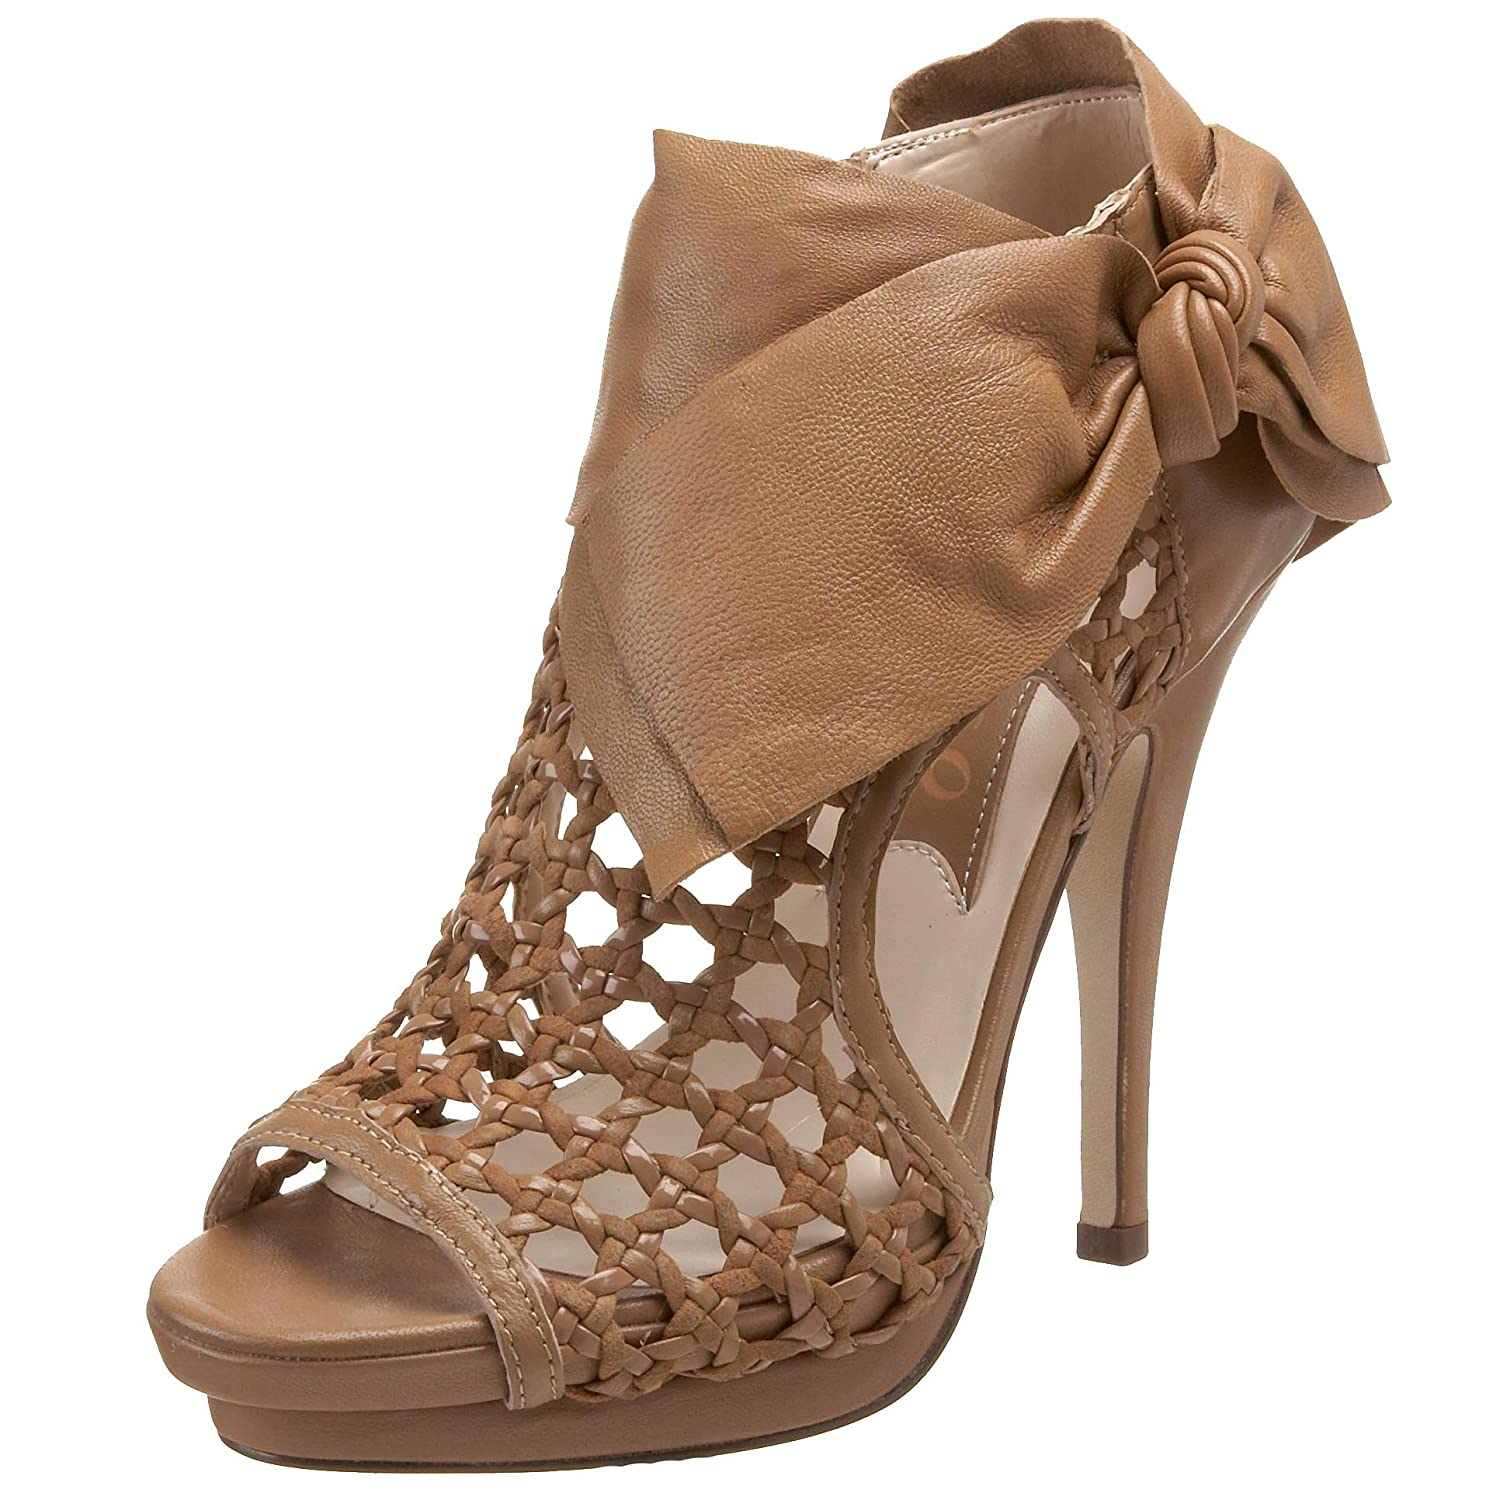 Shop Rainbow for trendy womens shoes at prices you'll love. Everyday free shipping & free returns to stores. Store Locator; Womens Shoes Select Category Select Size + Color. Shoes. Booties Boots Heels and Pumps Ankle Strap High Heel Wedge Sandals. Ankle Strap High Heel Wedge Sandals $ More colors.